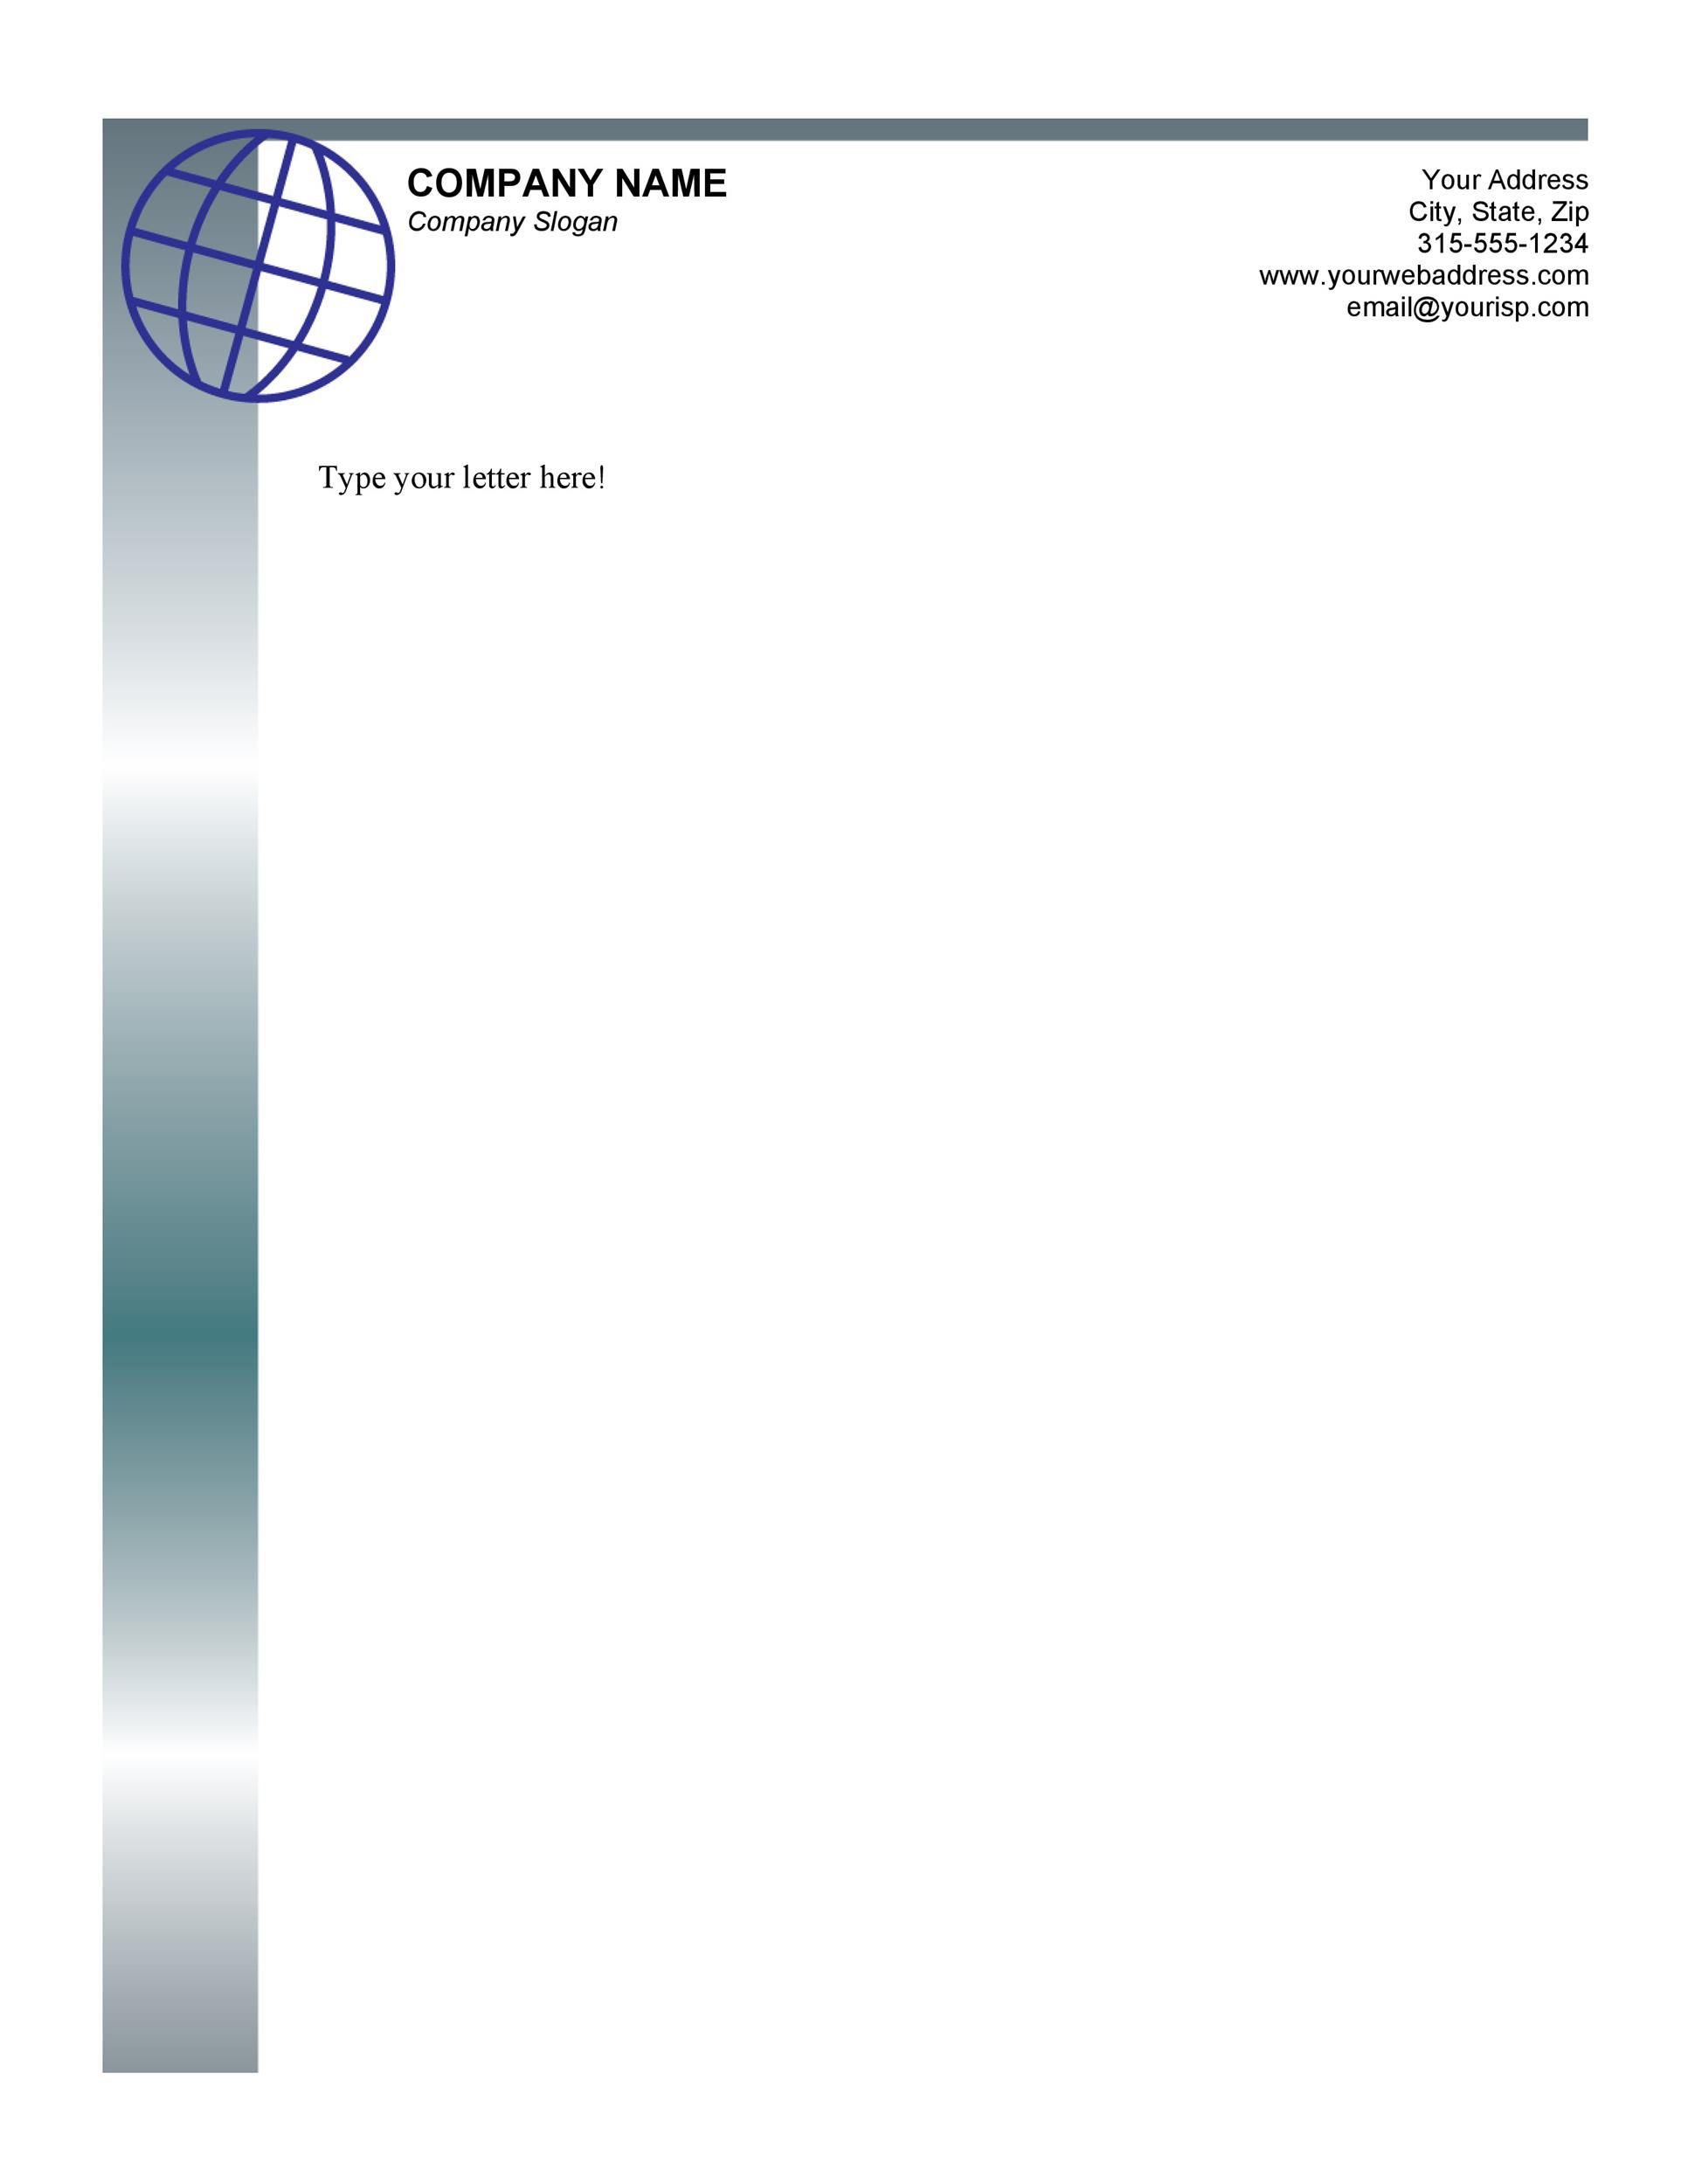 008 Staggering Free Company Letterhead Template Highest Quality  Online Psd Download Word 2007Full